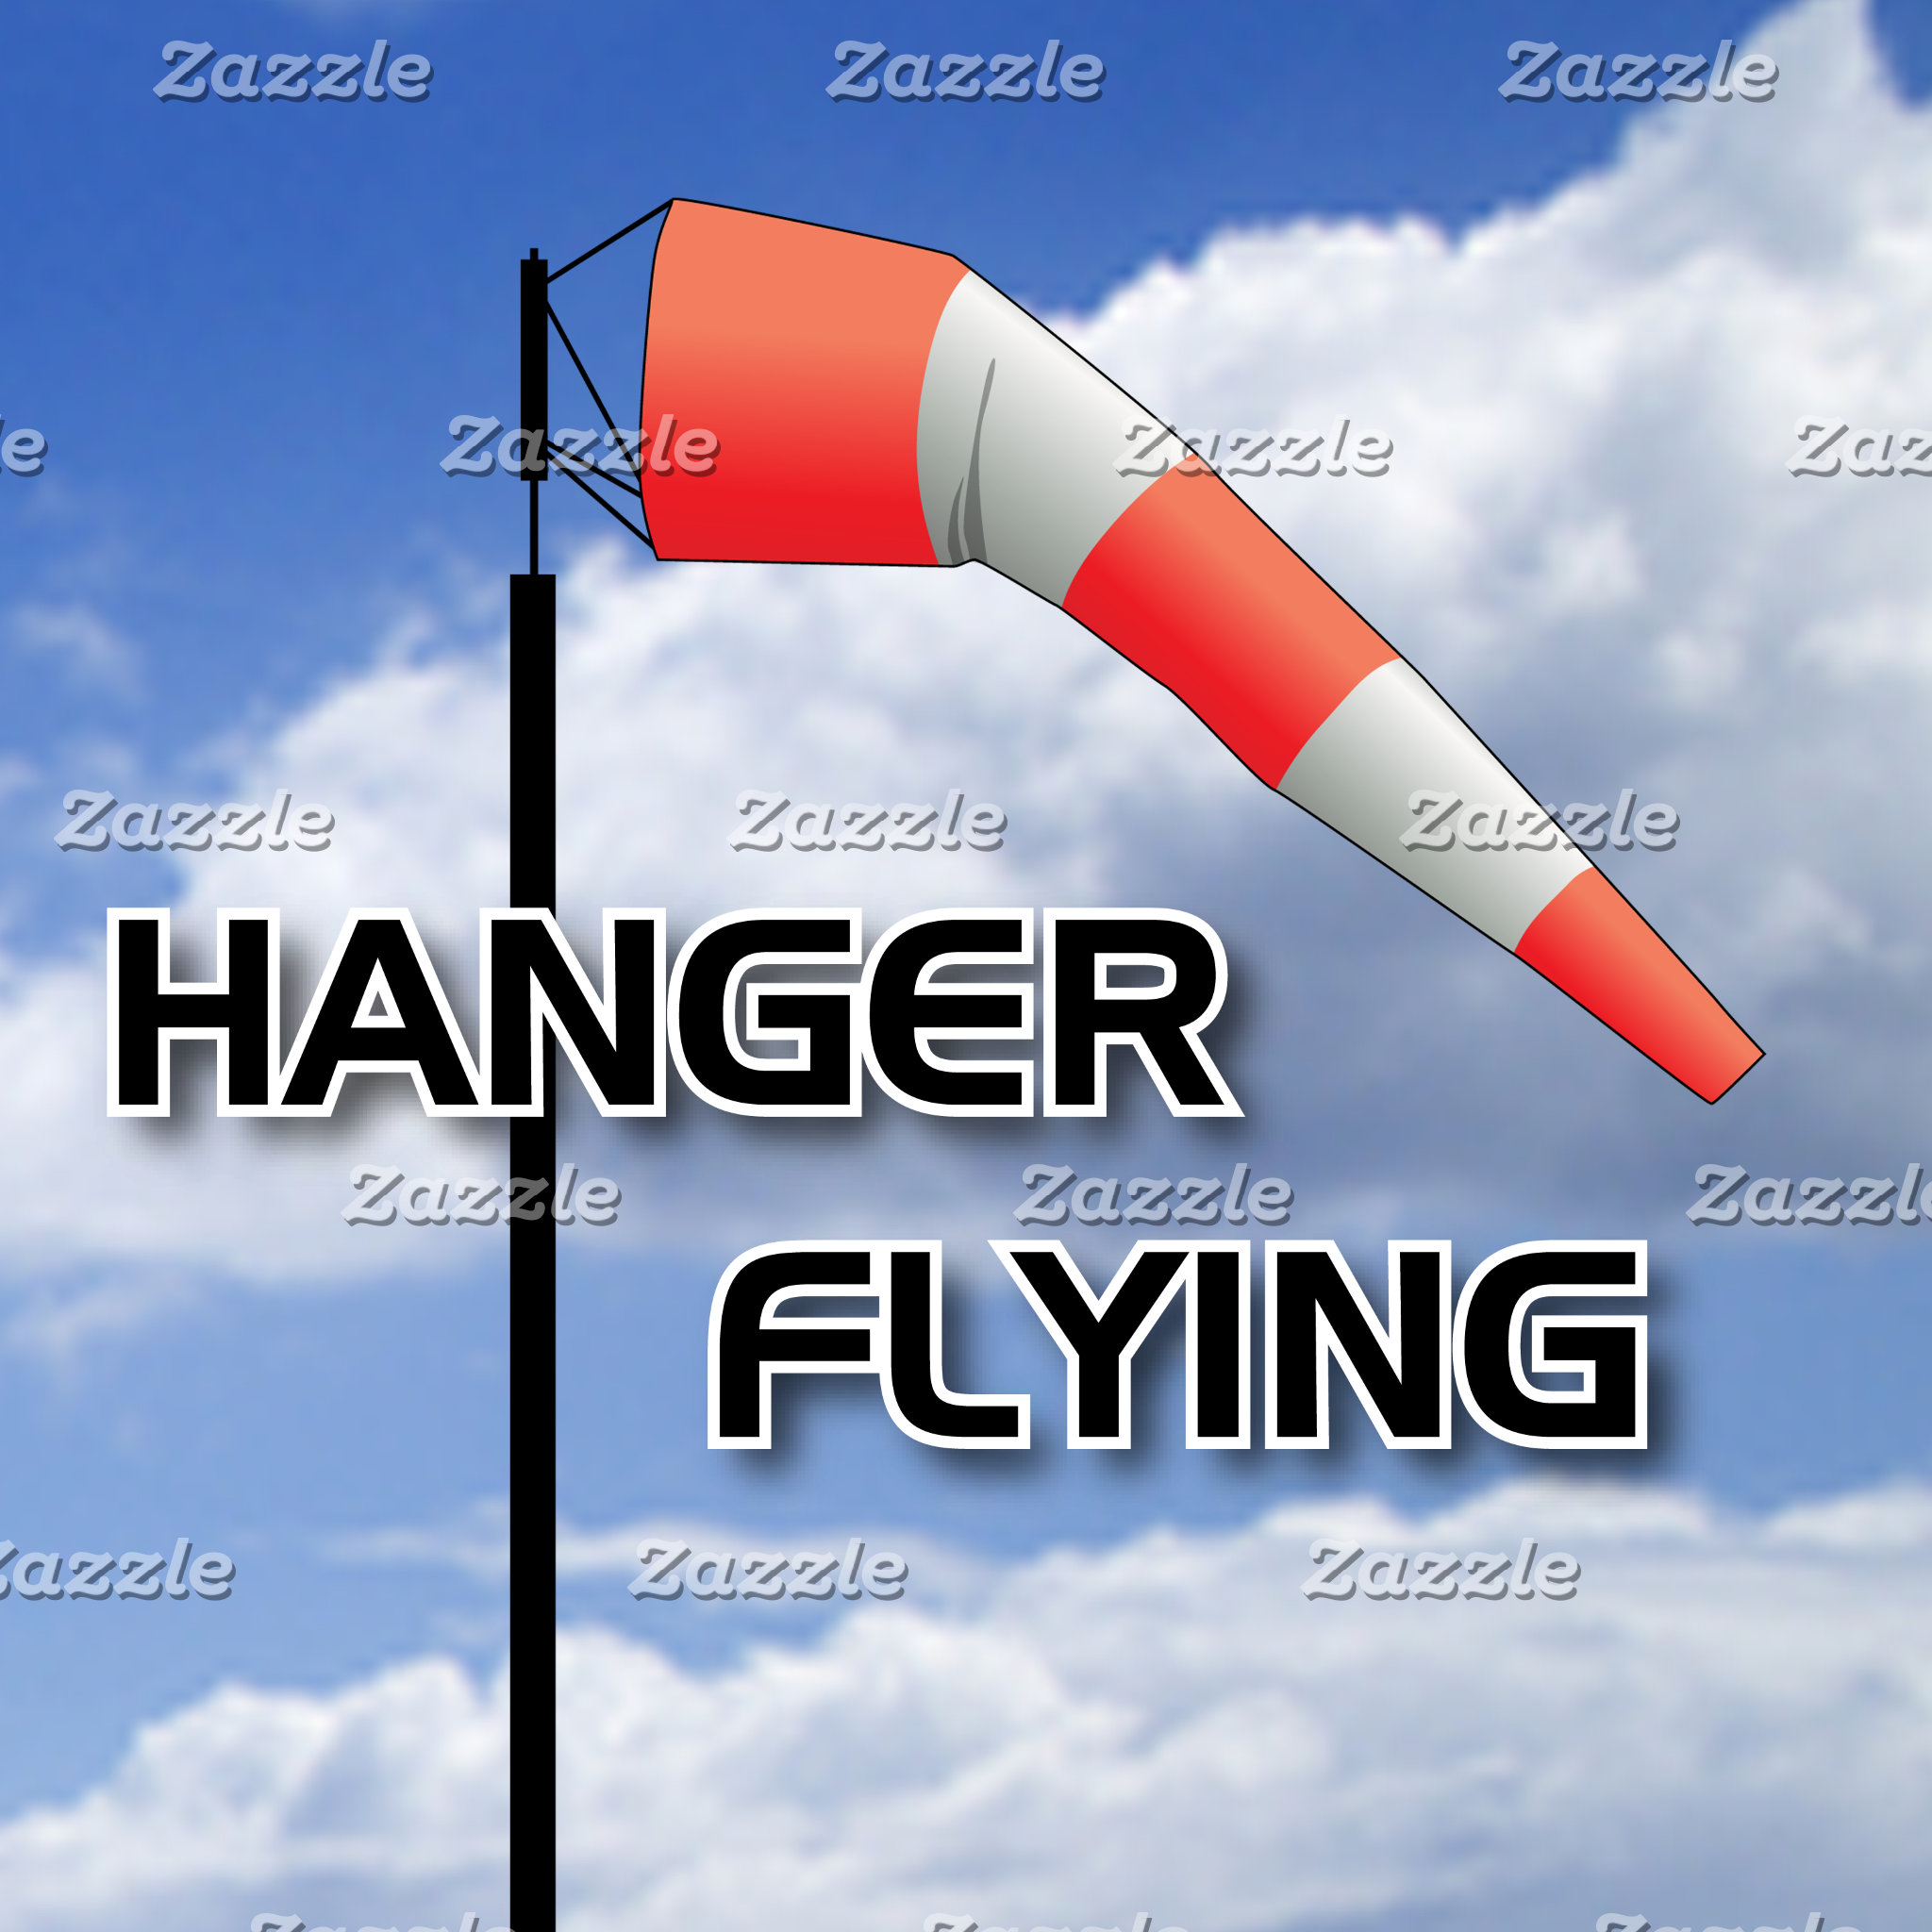 Hanger Flying